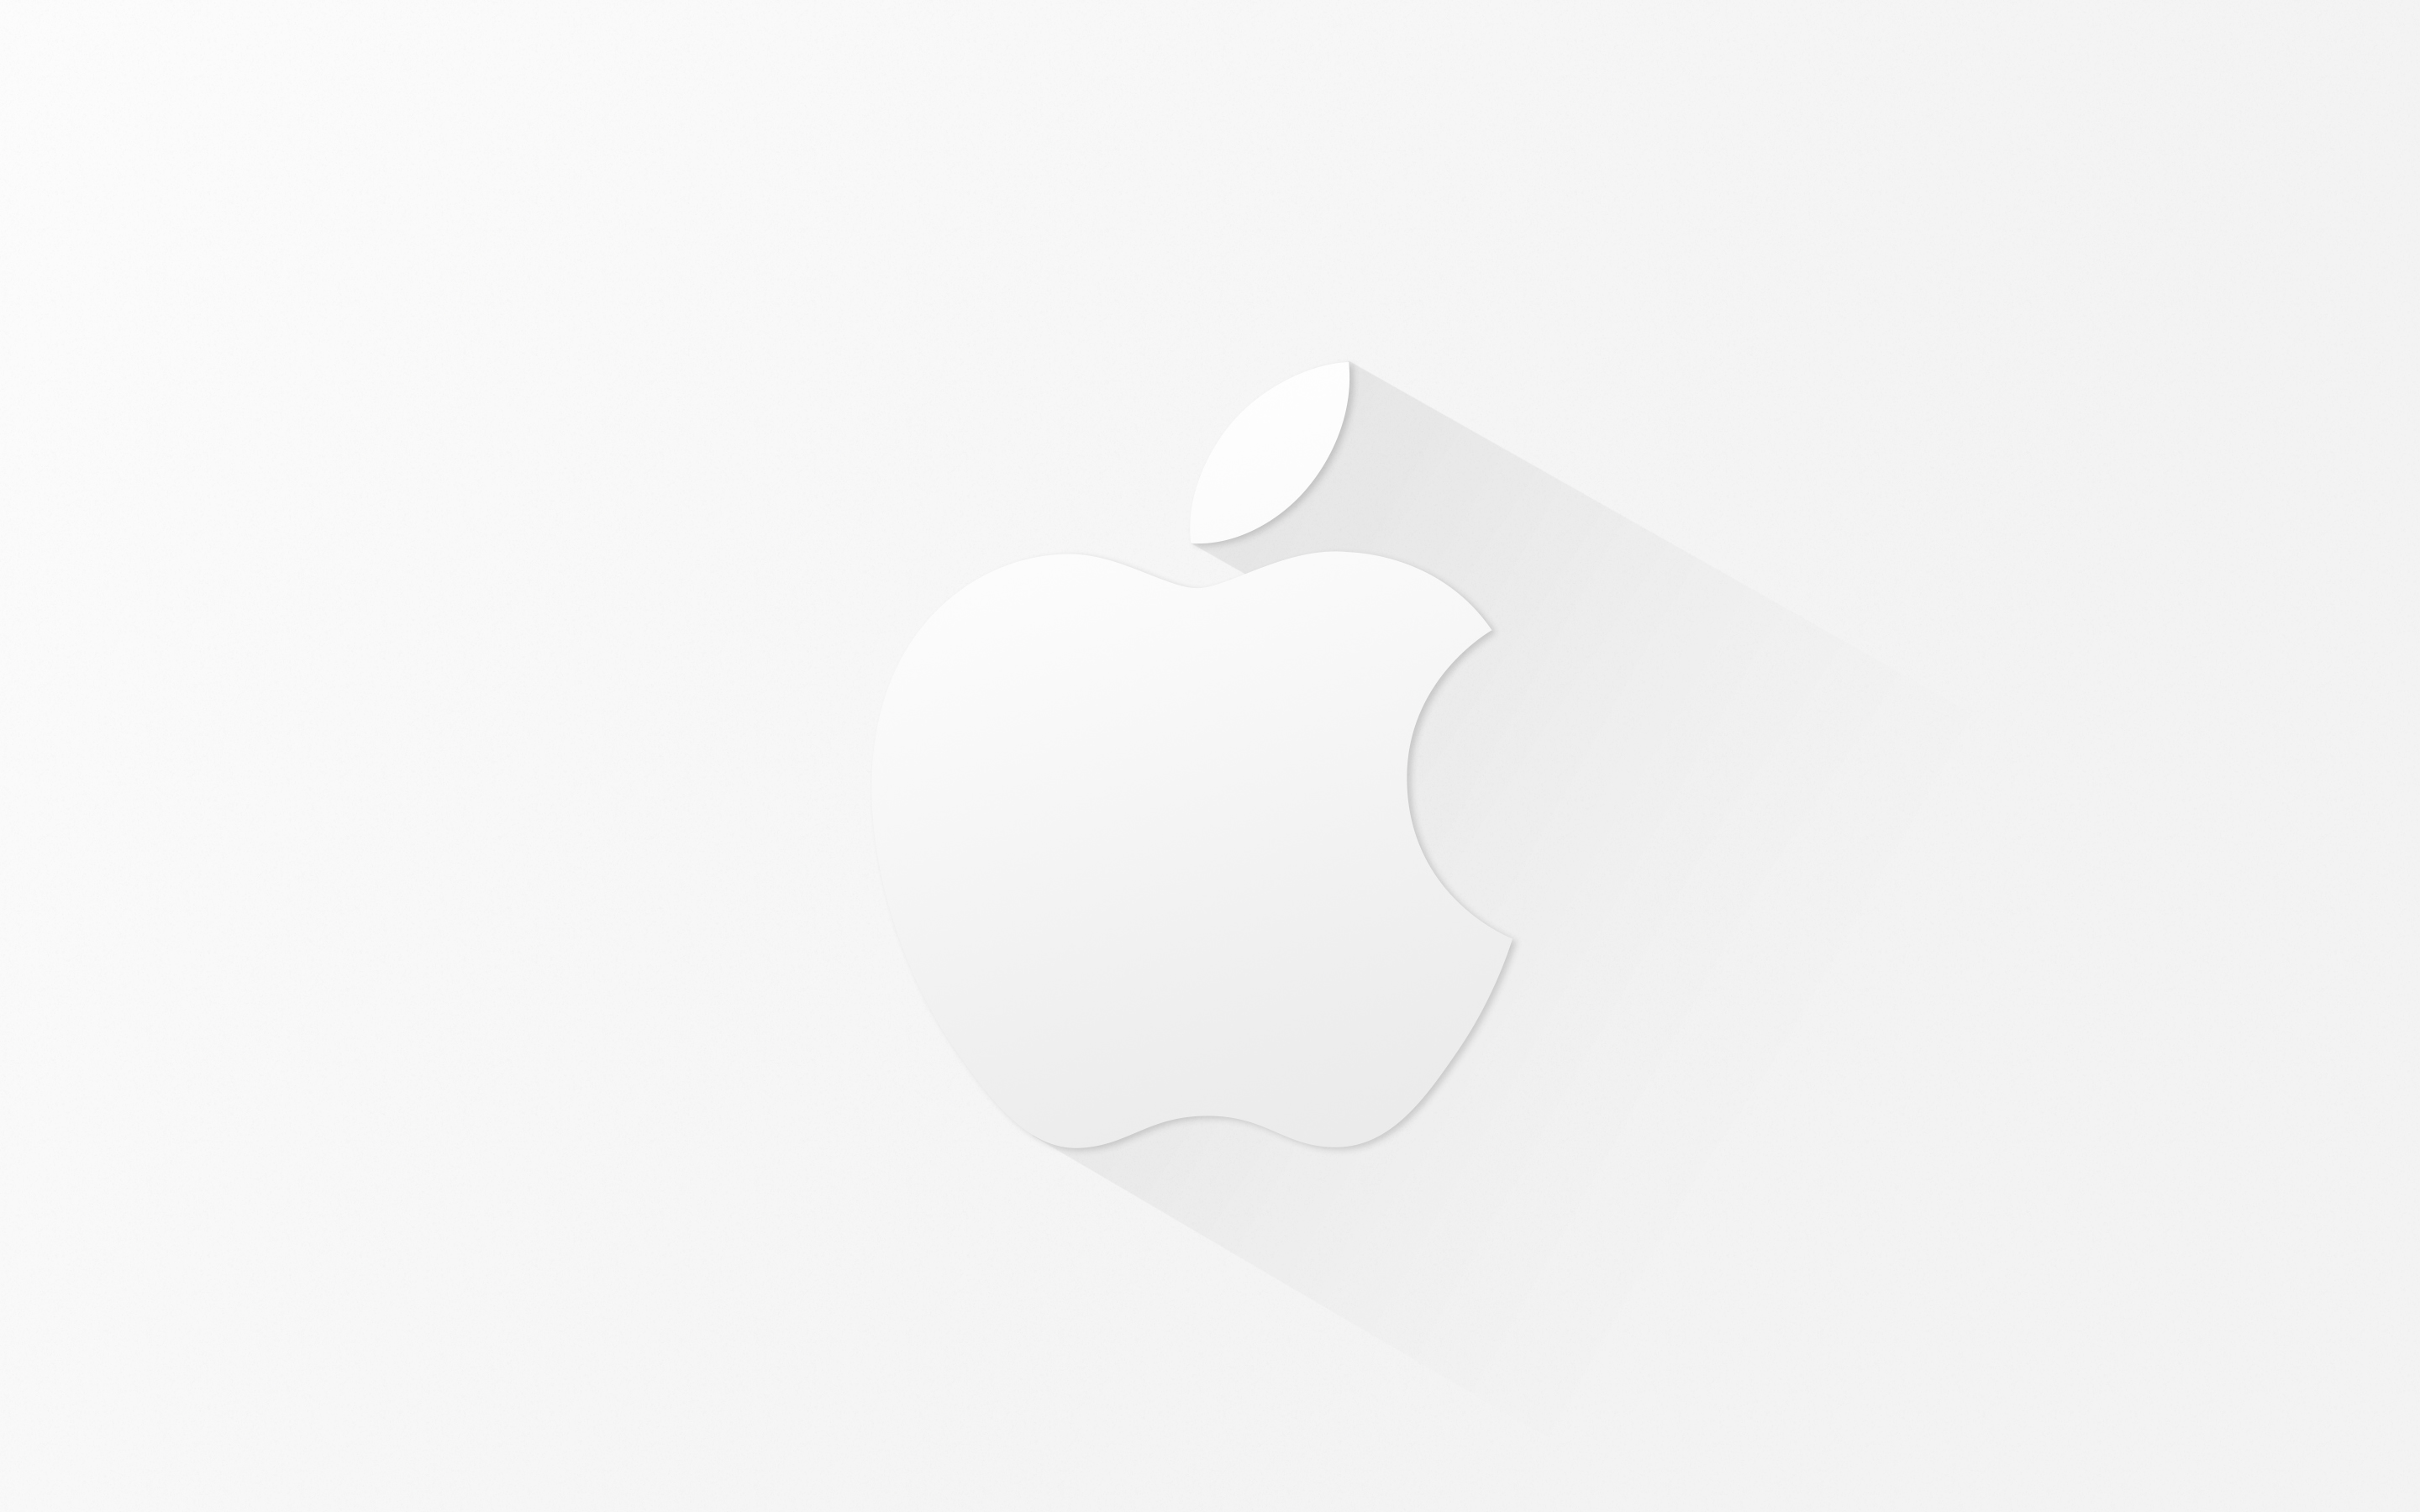 Desktop Apple Event 9.9.2014